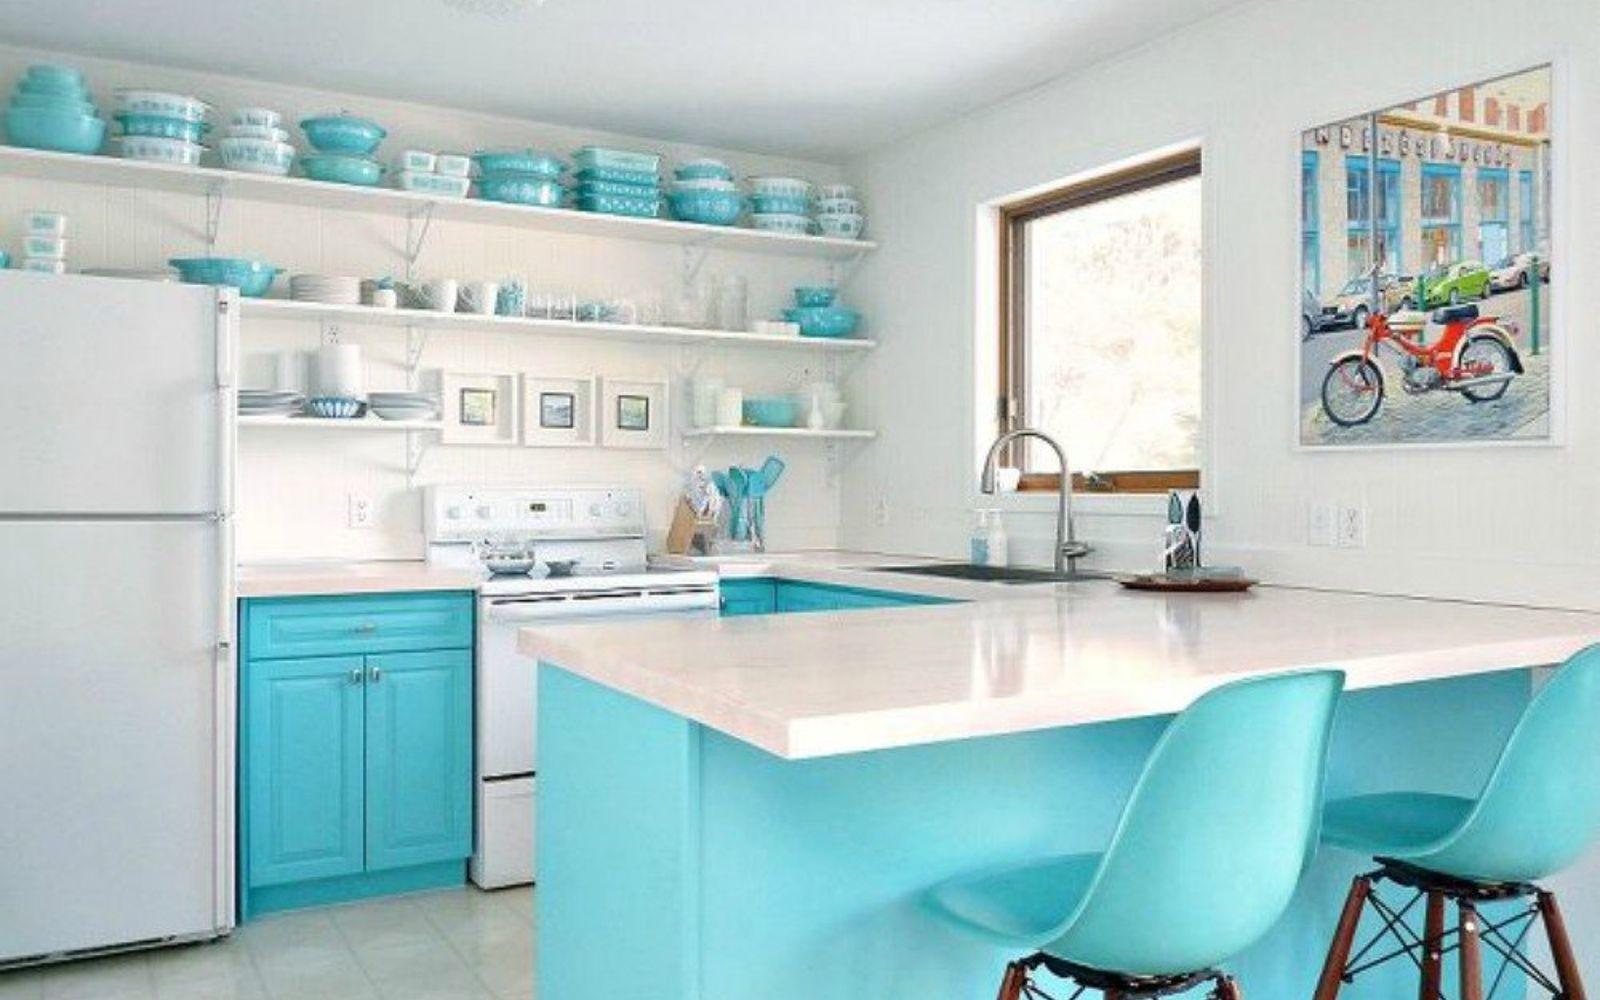 s transform your kitchen cabinets without paint 11 ideas , kitchen cabinets, kitchen design, Take off the doors for open shelving